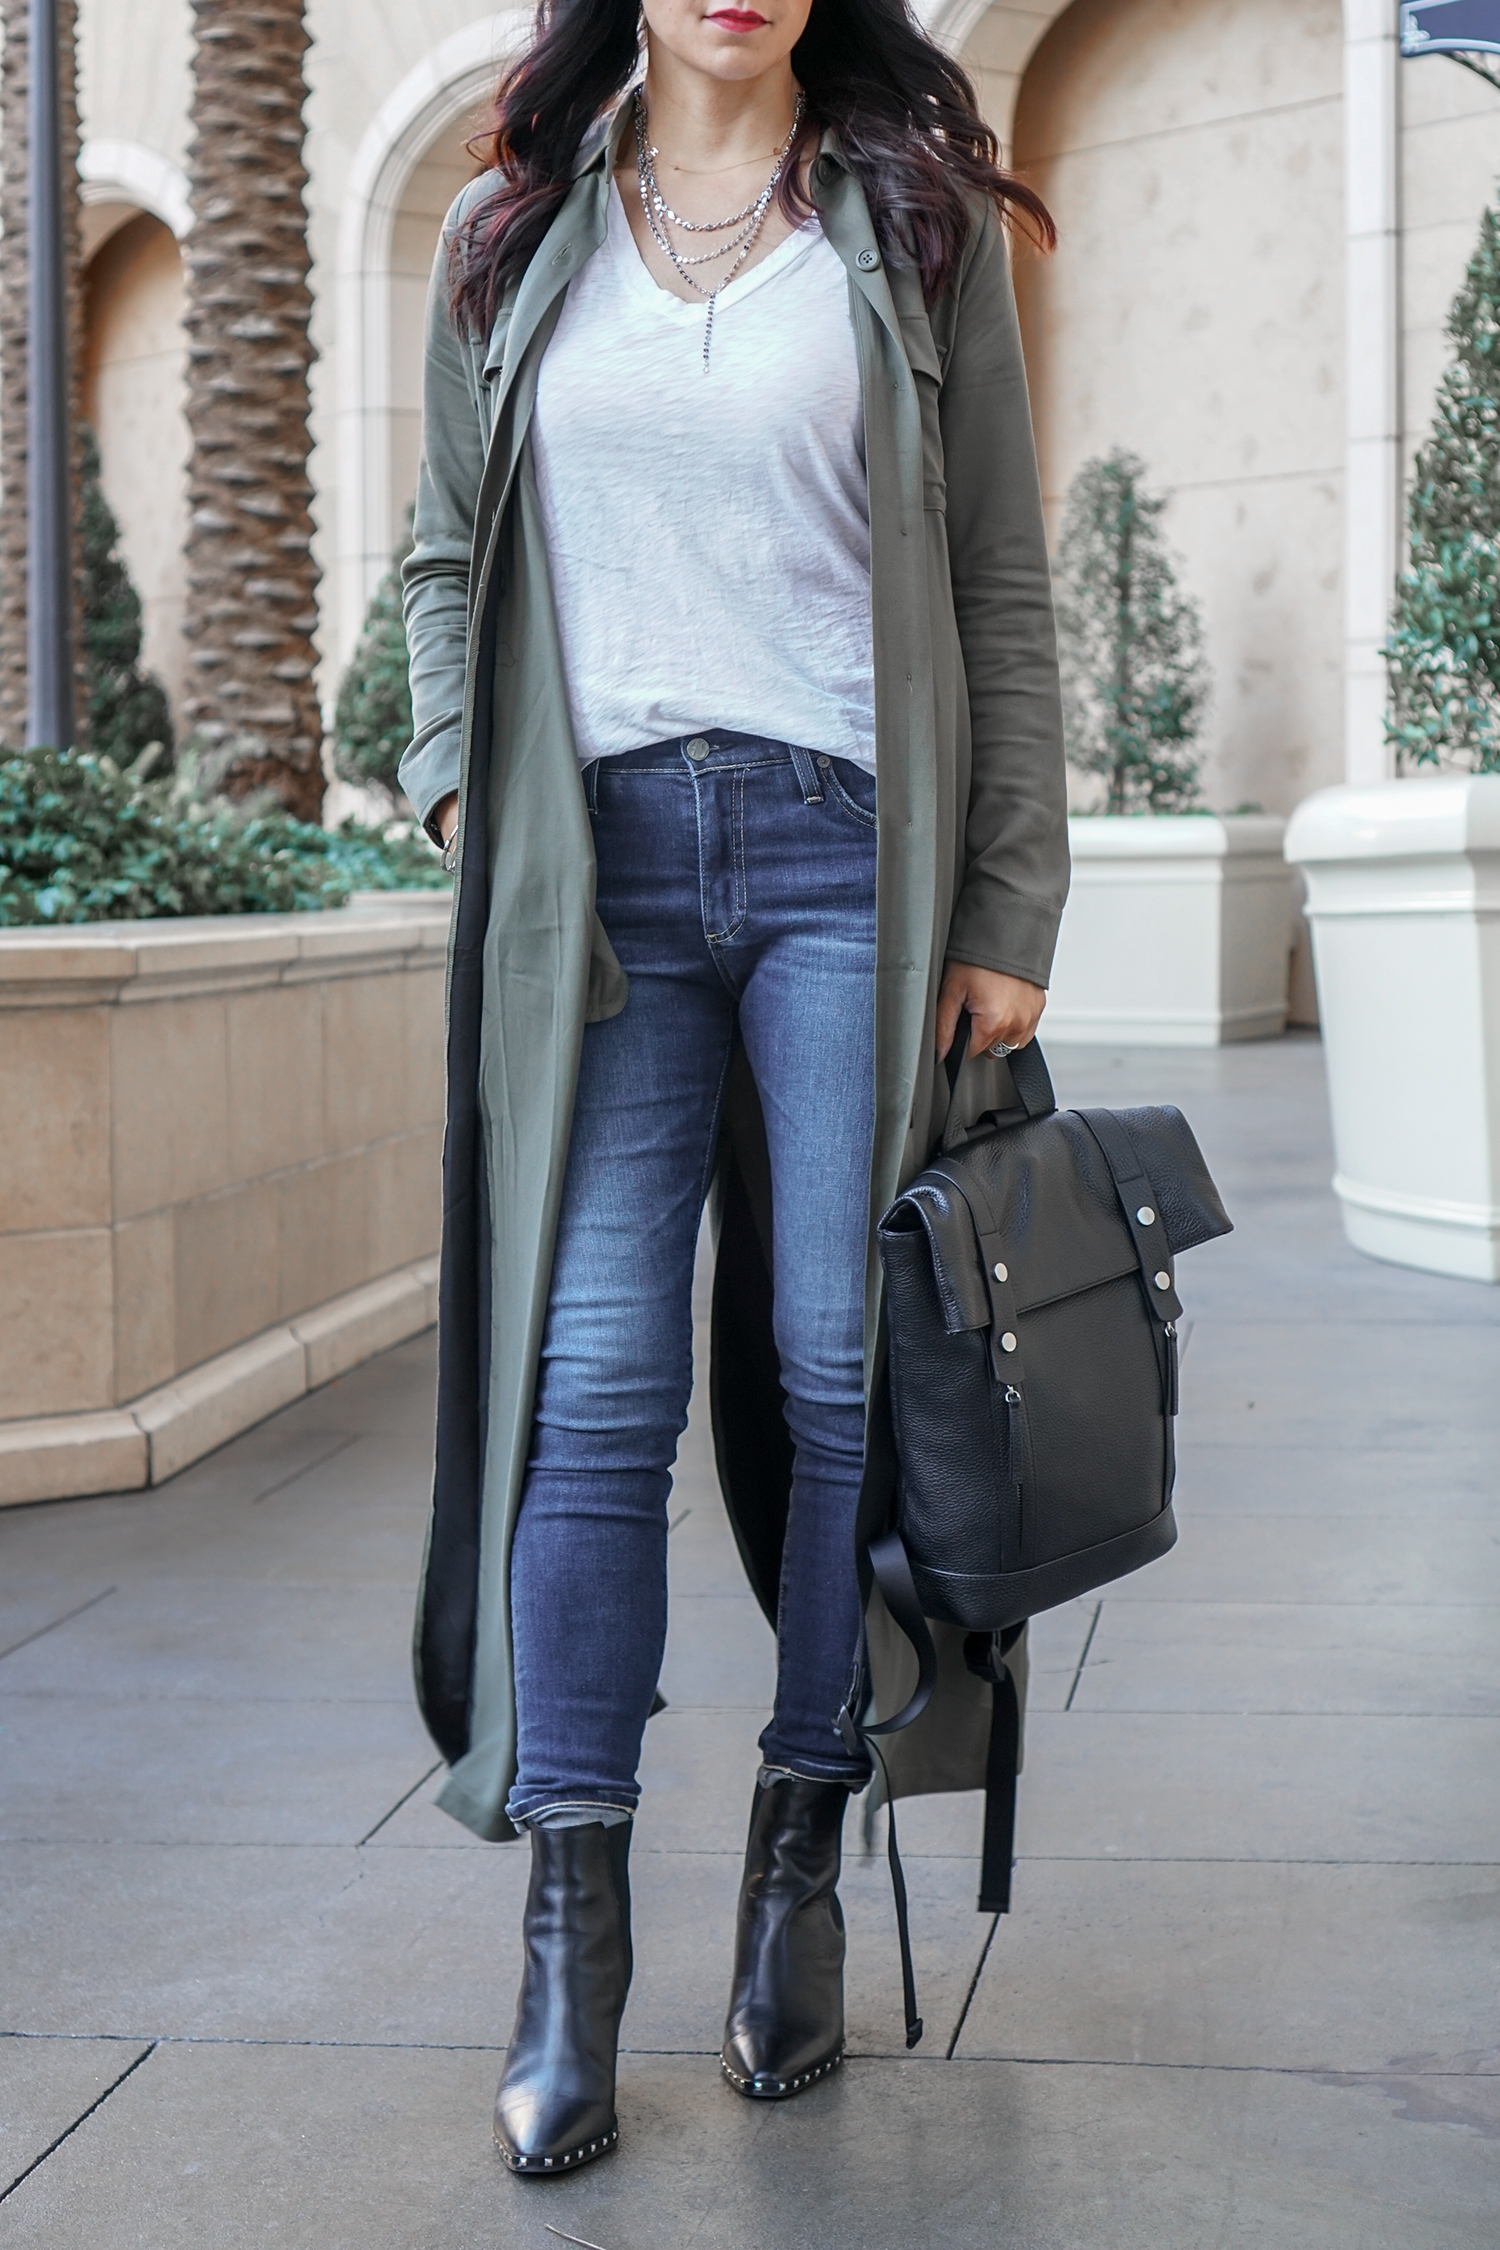 Long Duster Coat, Ankle Boots, How To Style A Leather Backpack